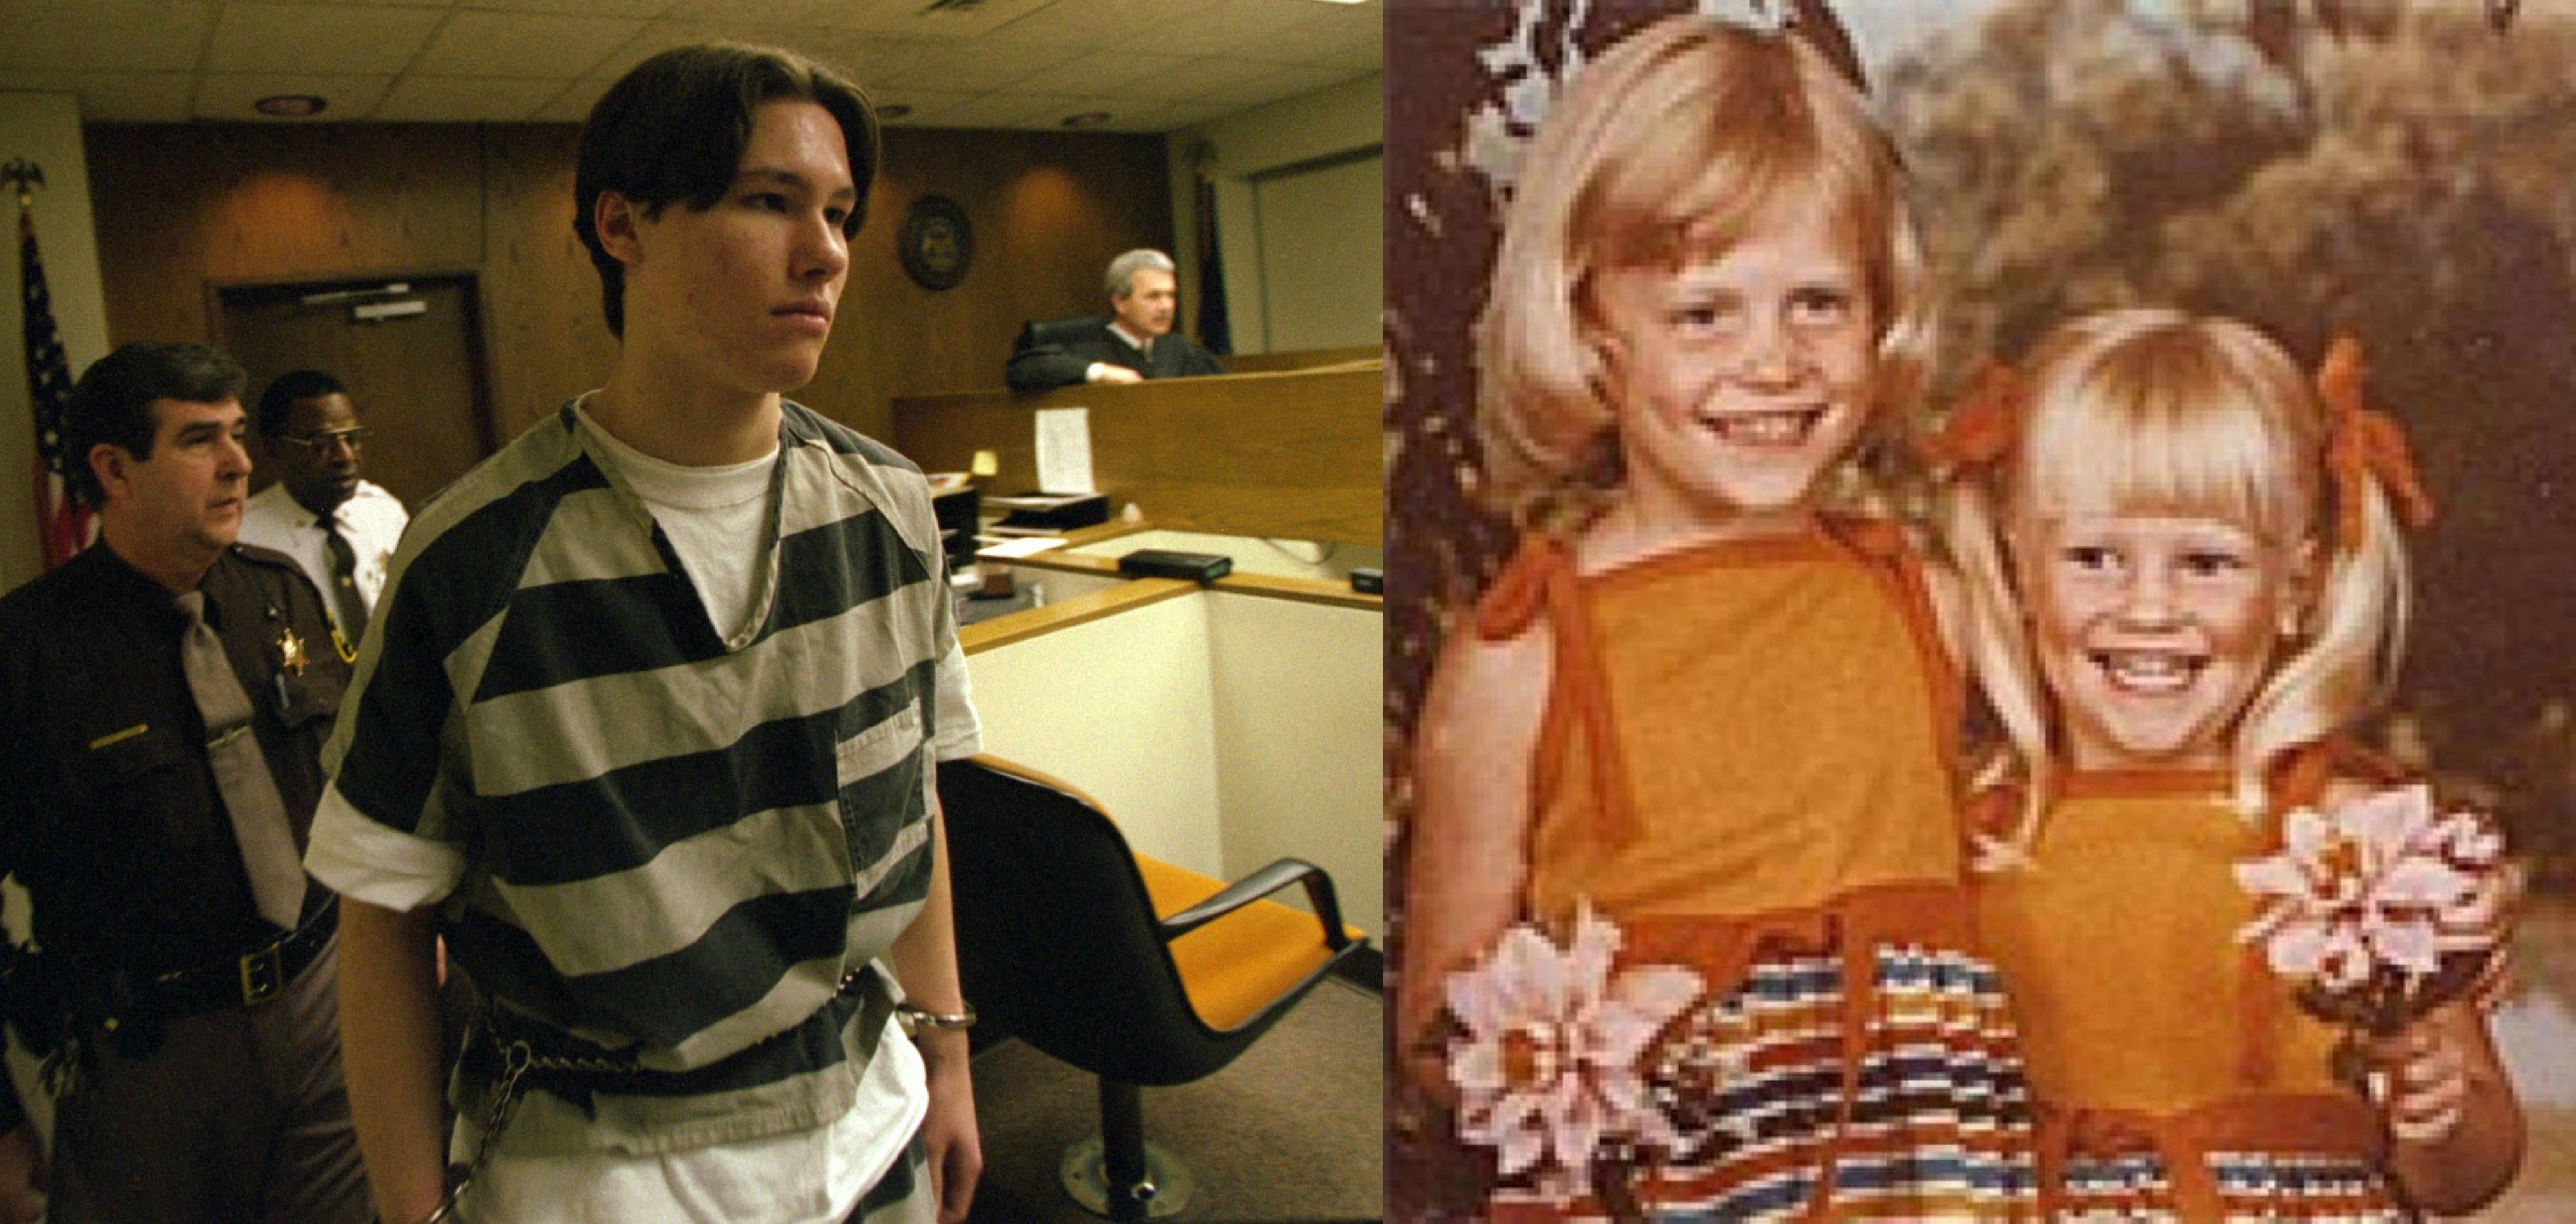 15 Children Who Killed Their Own Parents Therichest Kipland kip kinkel was fifteen years old when his violent ways achieved their climax. 15 children who killed their own